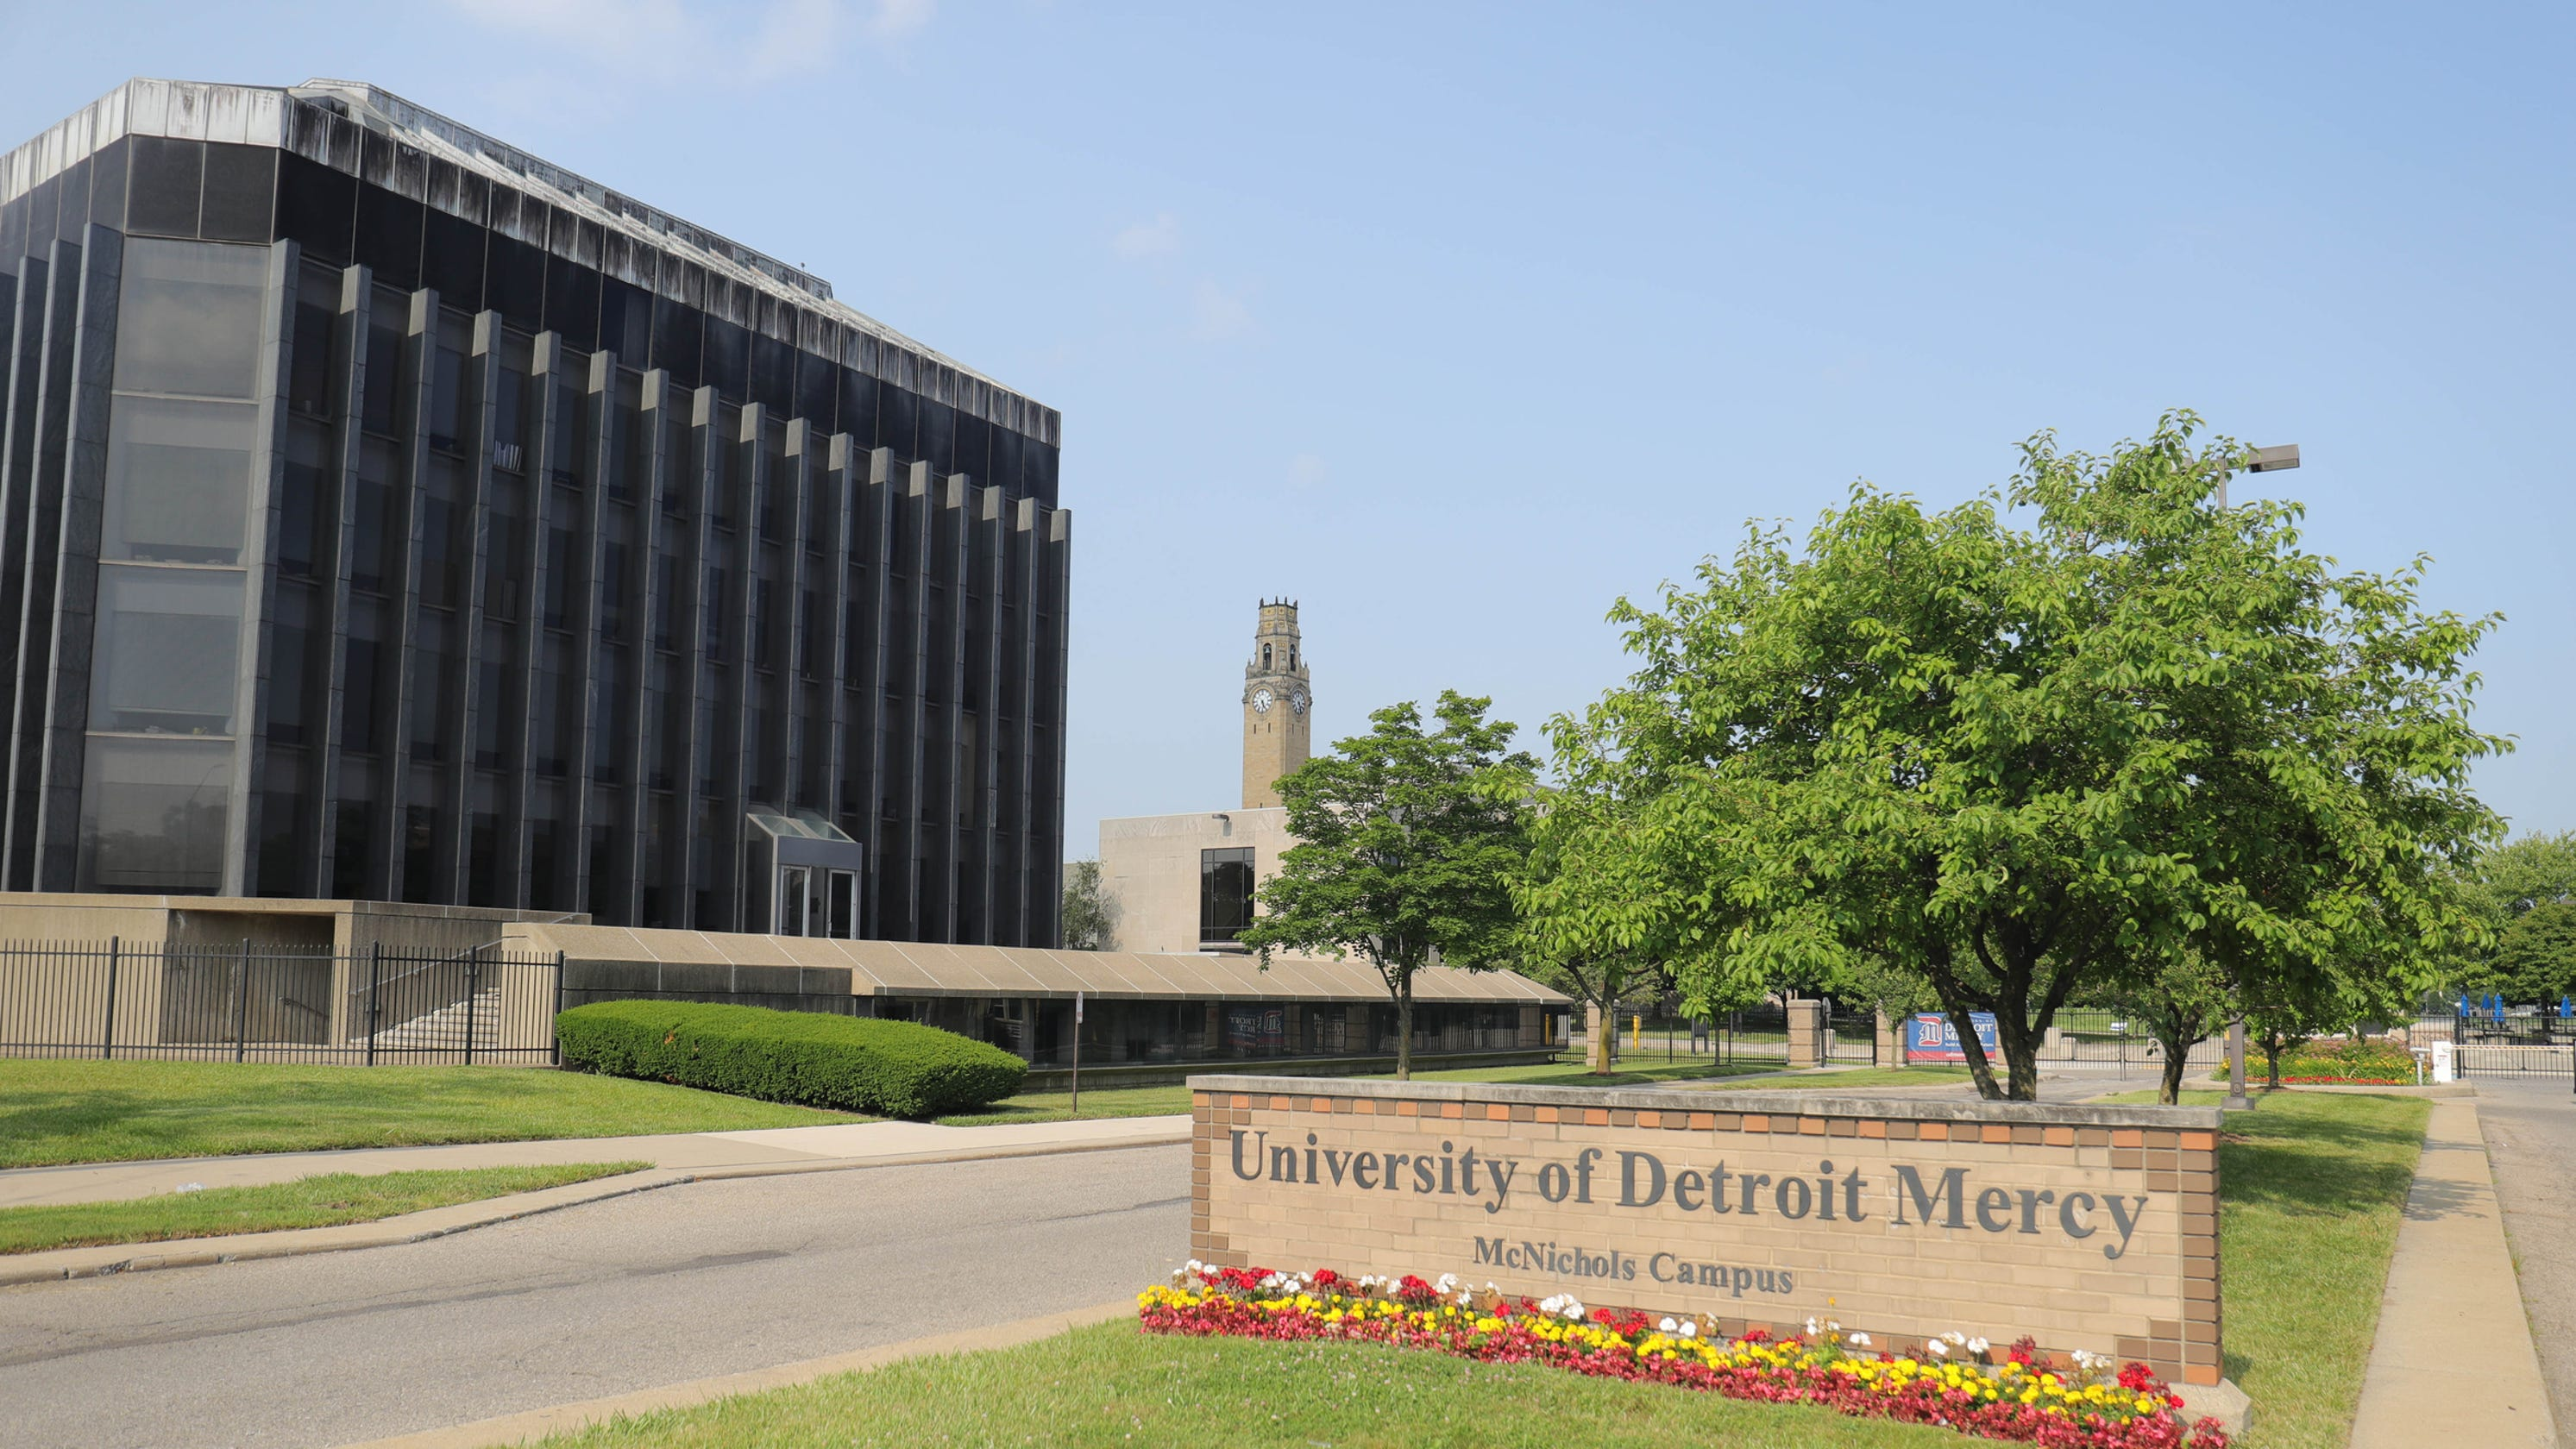 University Of Detroit Mercy >> University Of Detroit Mercy To Cut Tuition For Some Graduate